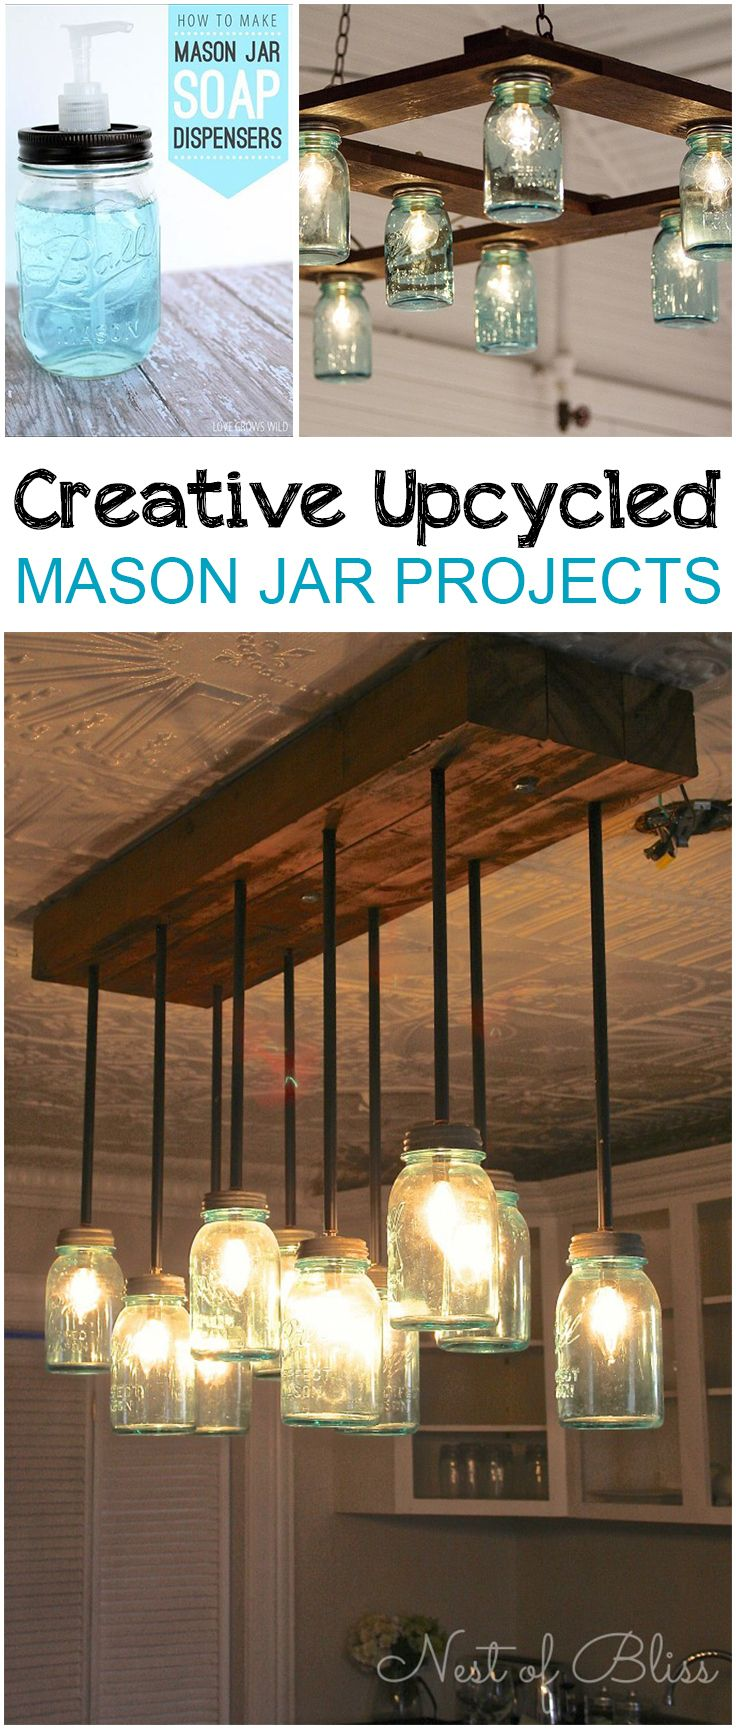 Creative Upcycled Mason Jar Projects